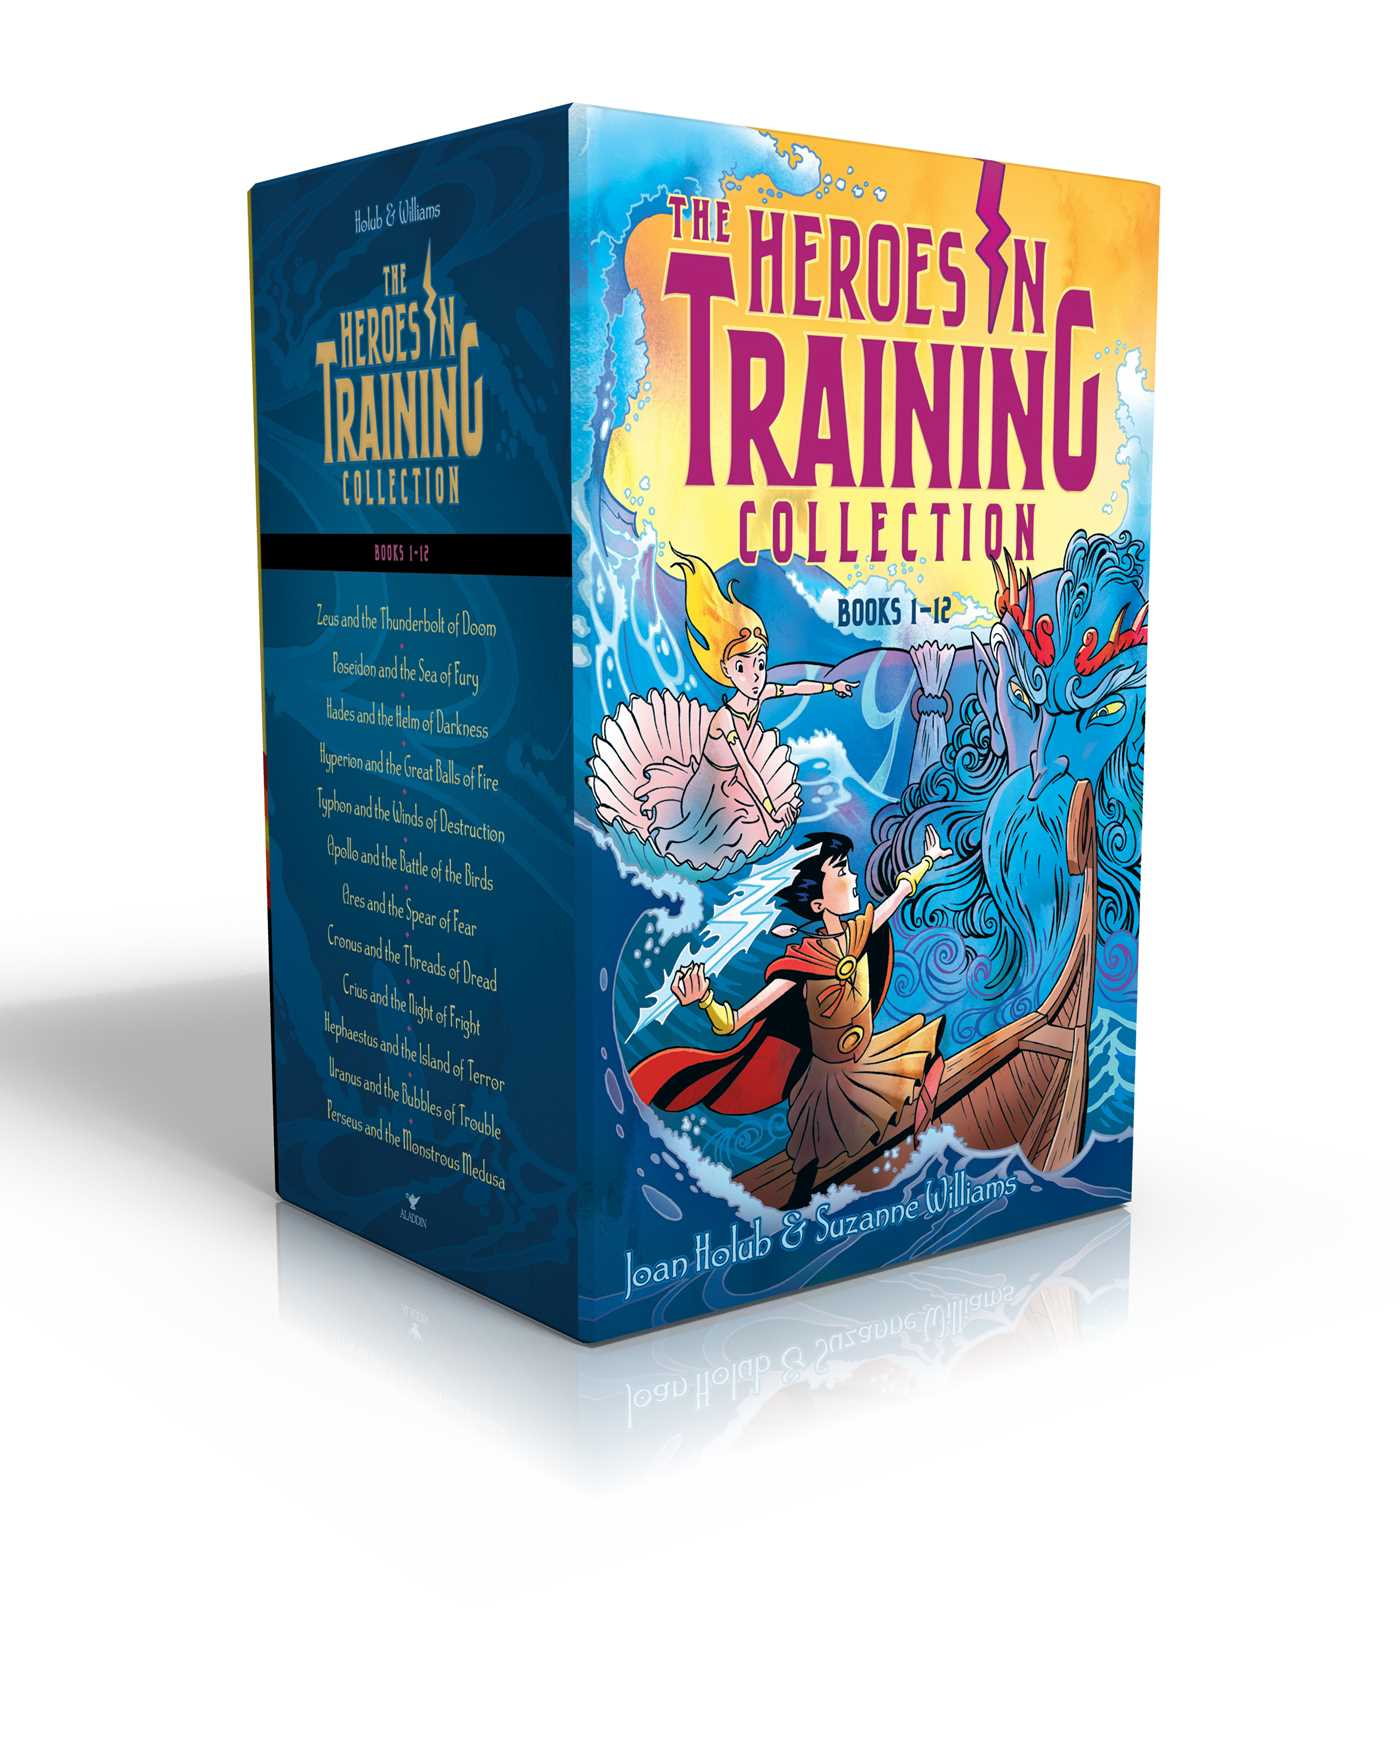 Heroes in training olympian collection books 1 12 9781481496988 hr